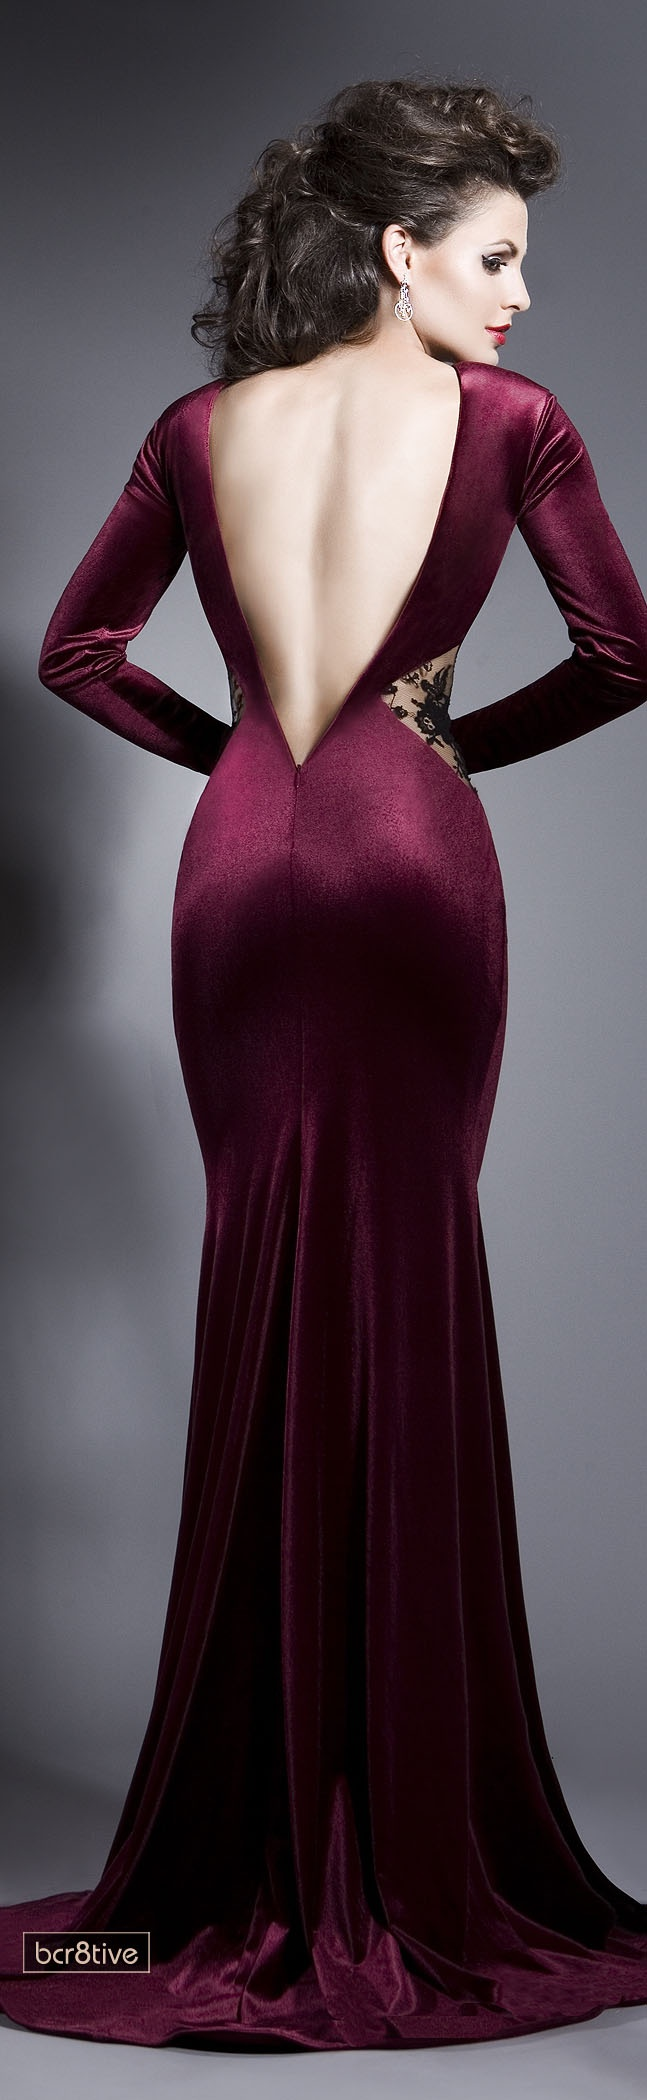 Evening gown, couture, evening #dresses, formal and elegant Bien Savvy -- Thrill Me